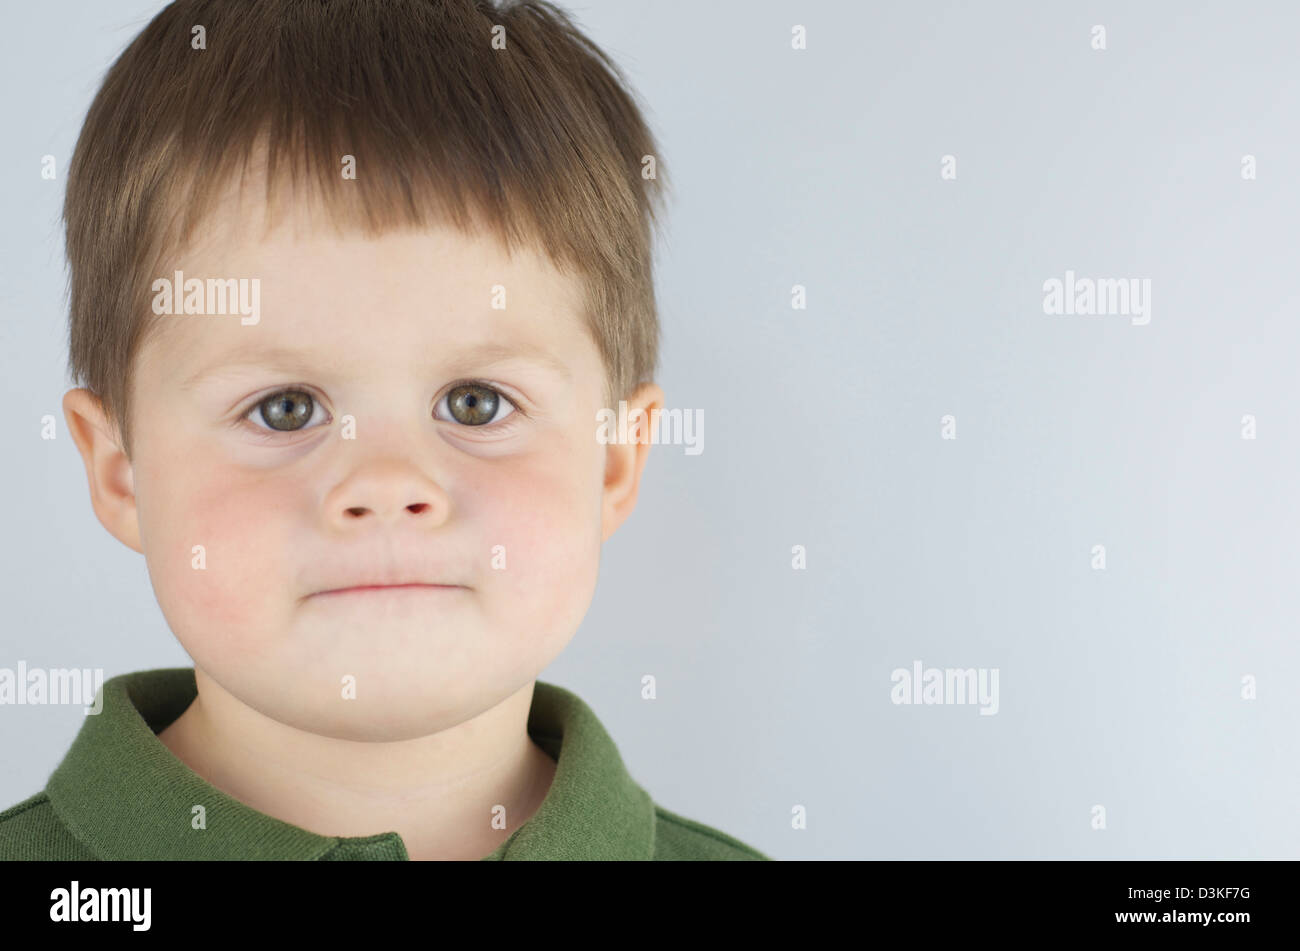 Serious and determined 2 year old boy looking straight at camera, lips pursed with green eyes wide and clear, copy - Stock Image